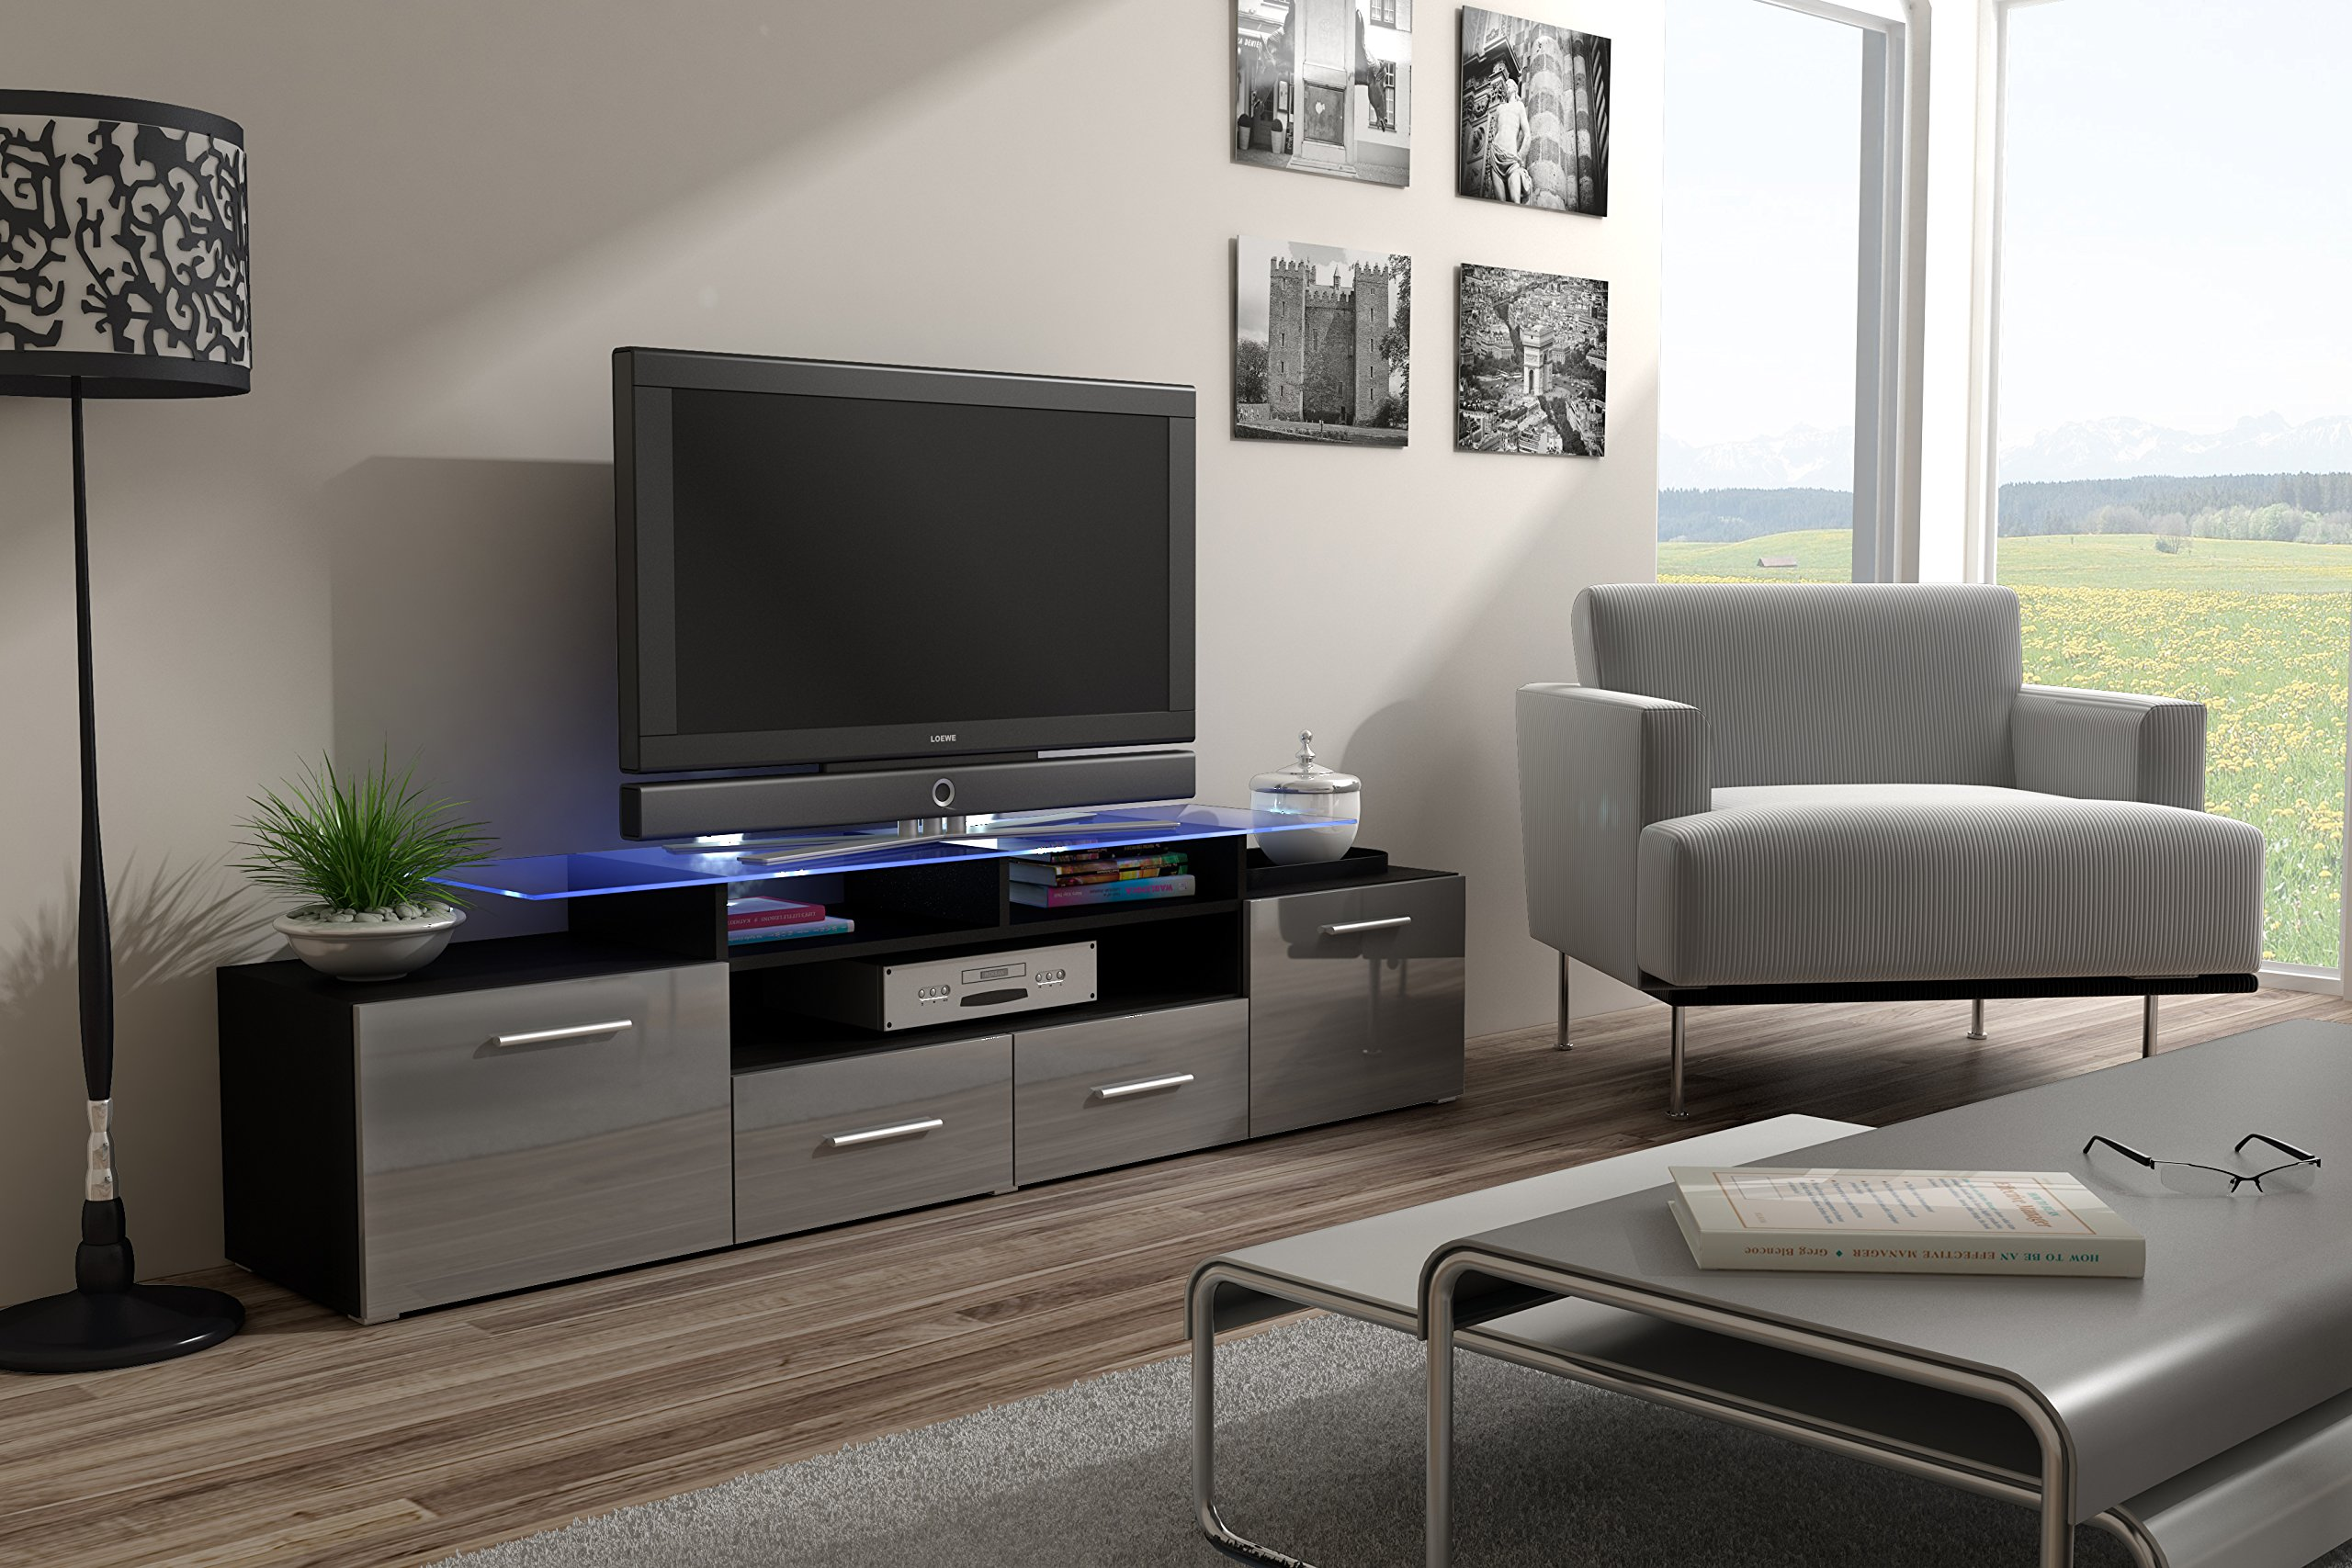 ENEA GRAND with top Glass Shelf Tv Stand - High Gloss Tv Cabinet / Design Furniture / Central Tv Unit (Black & Grey)